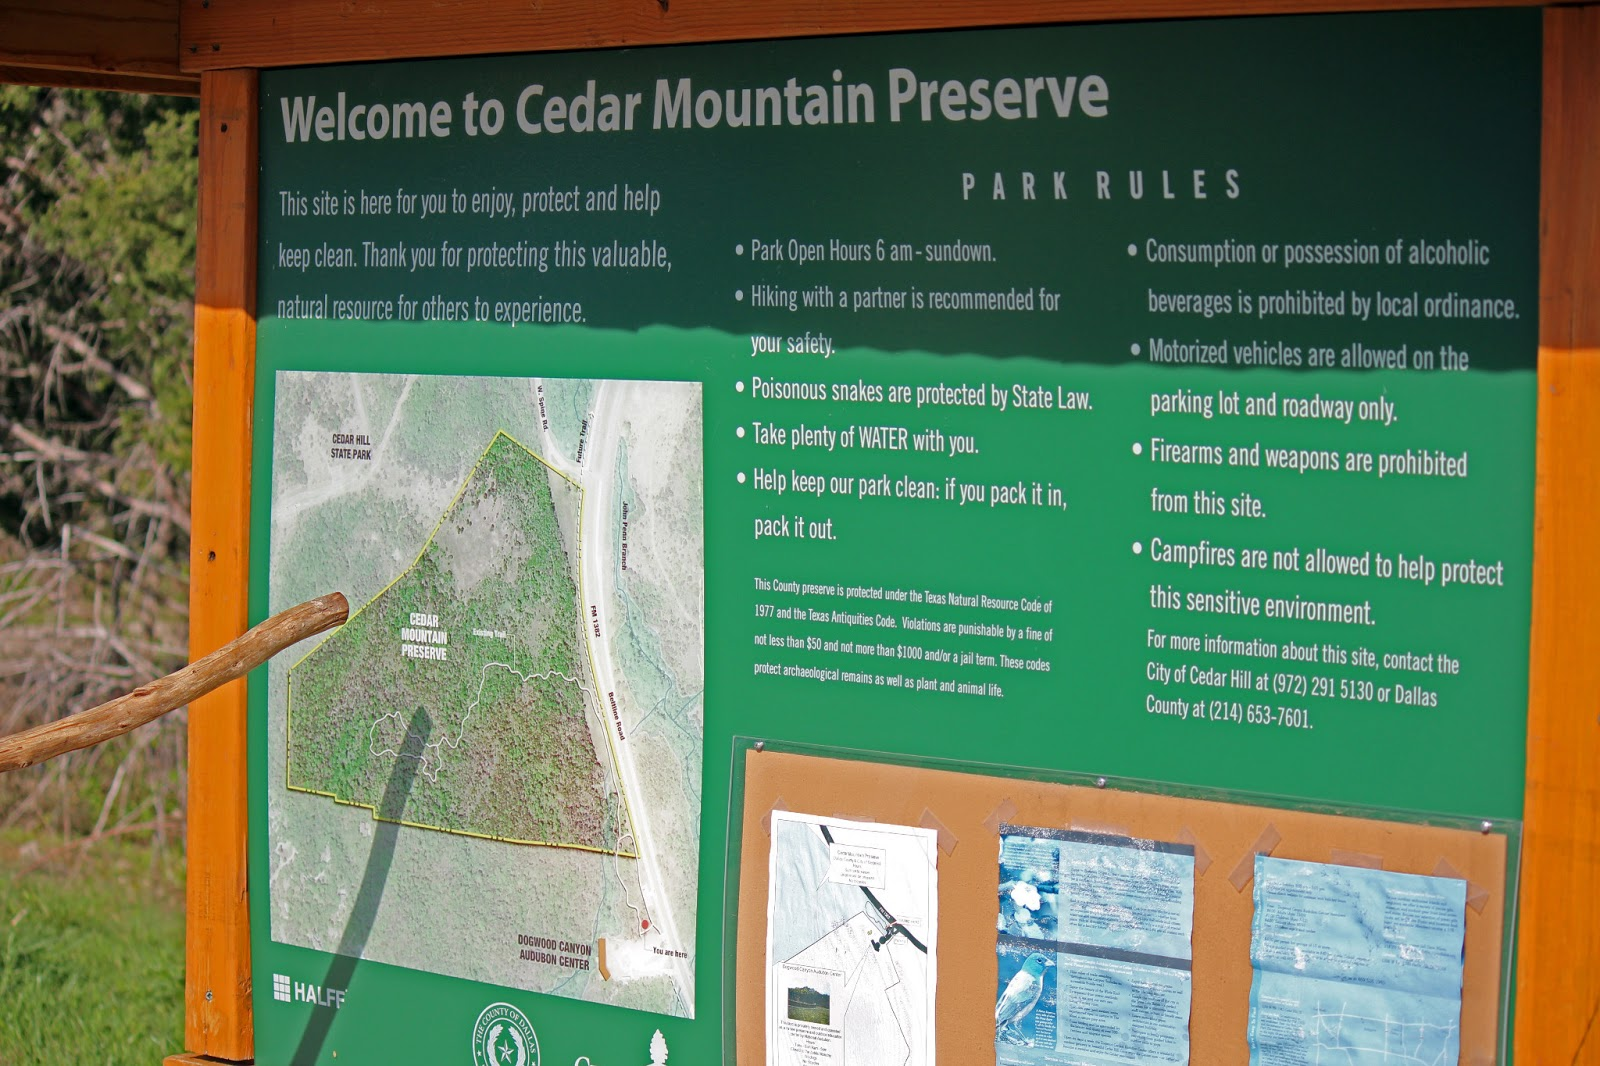 cedar mountain singles 7171 mountain creek parkway,  cedar ridge preserve (formerly the dallas nature center) is a slice of the hill country just 20 minutes from downtown dallas.